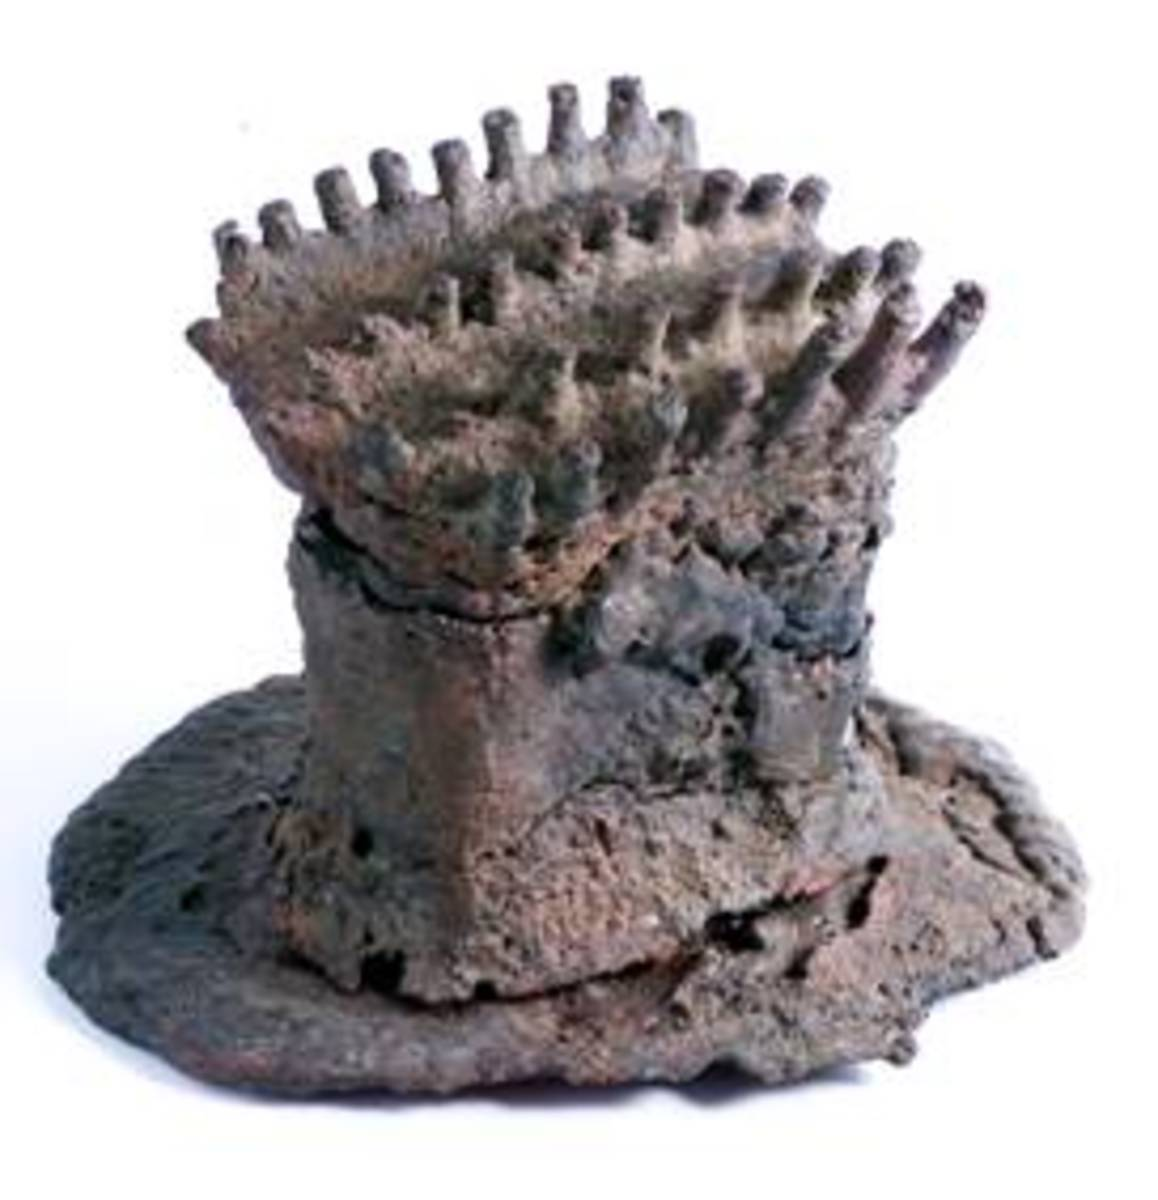 This is the iron works of mapungubwe; in the collectionfrom Mapungubwe you found bangles, anklets, beads, arrowheads, spears, rings, wire, plate, link, pins and pendants; alsom meturlurgical material resulting from smelting and smithing processes